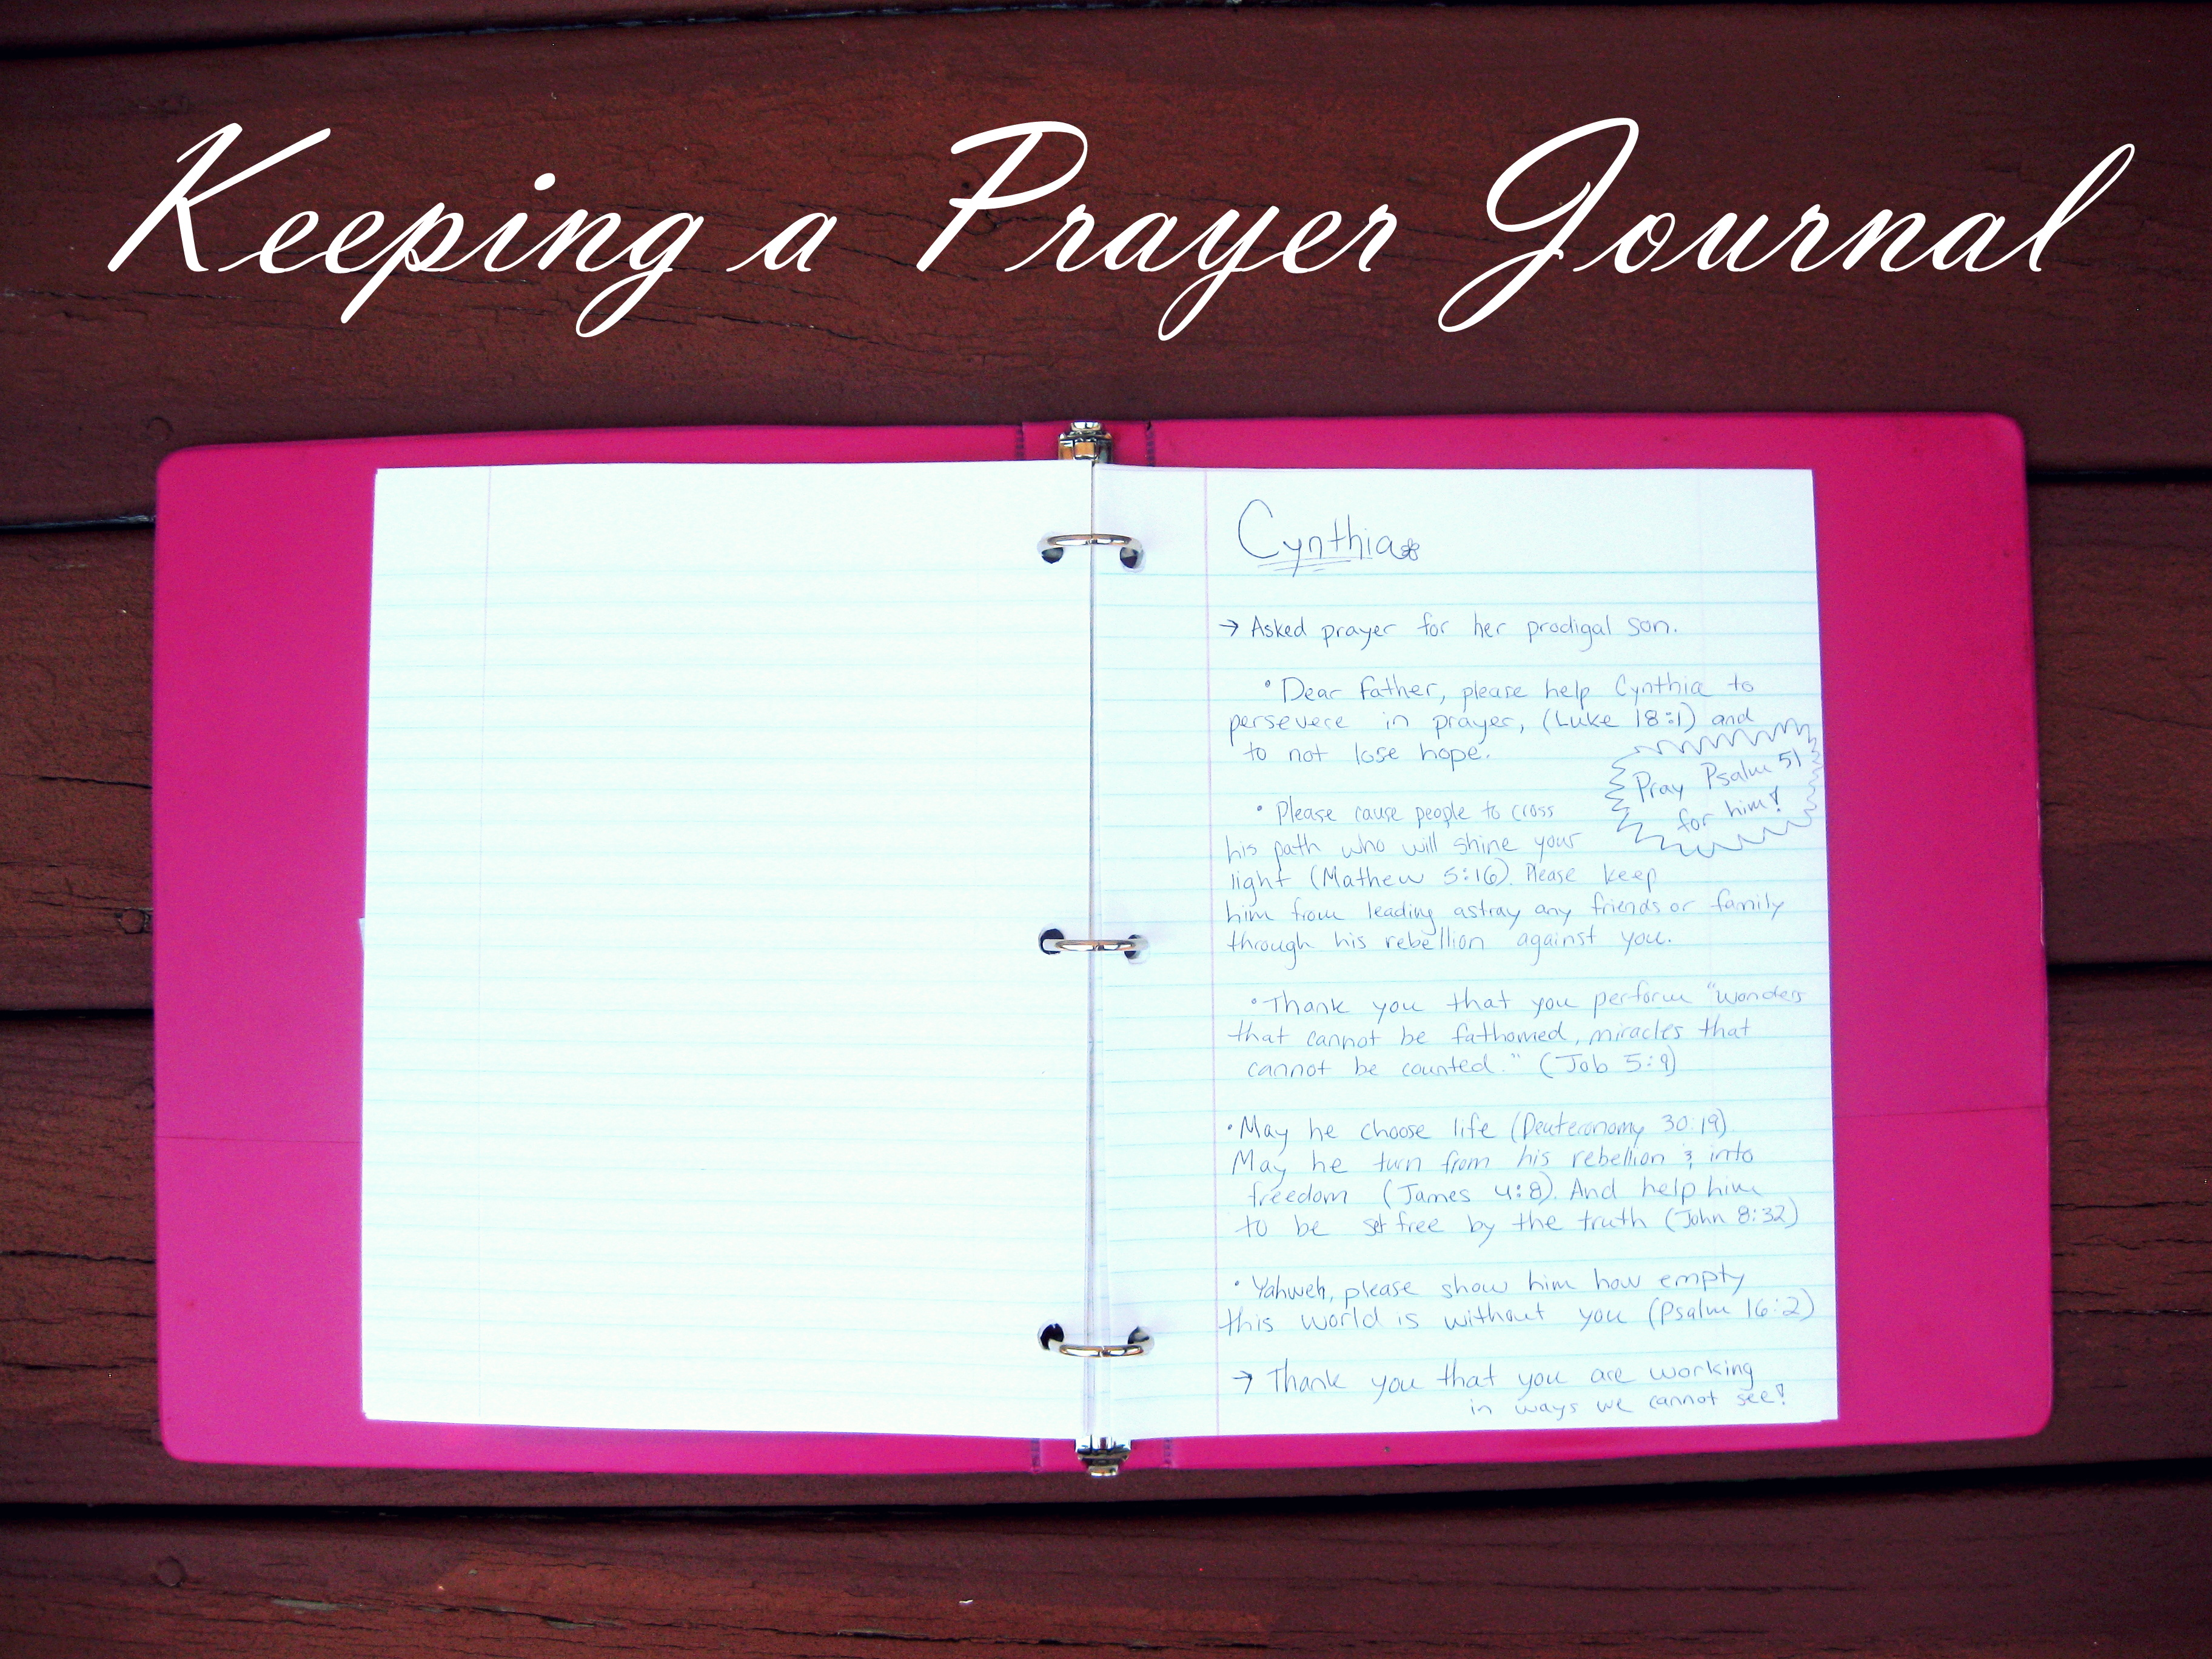 Keeping a Prayer Journal